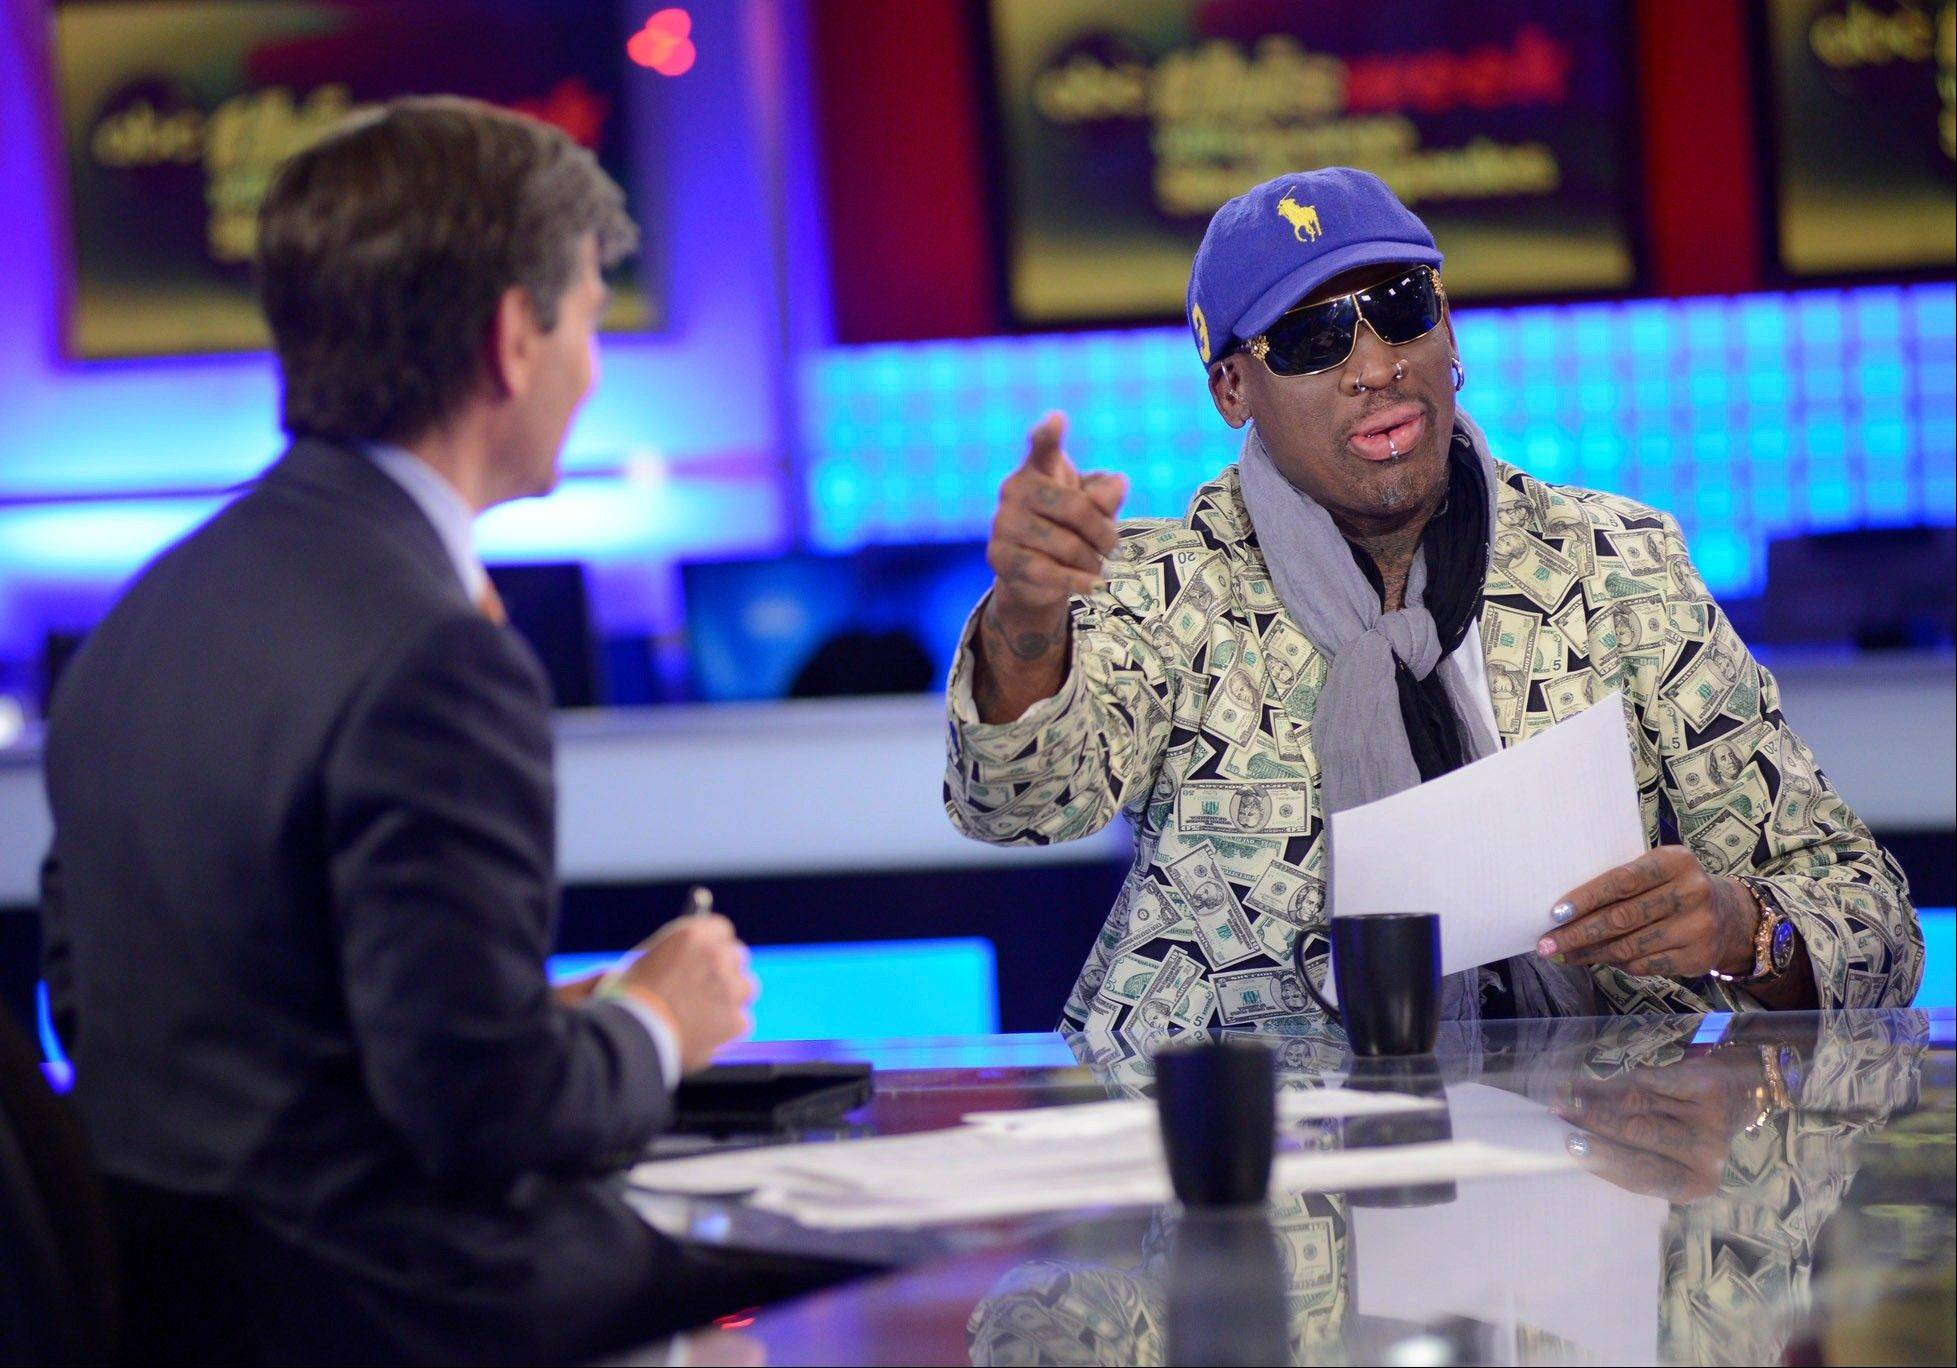 �This Week� host George Stephanopoulos, left, interviews former NBA star Dennis Rodman, just back from a visit with North Korea�s young leader Kim Jong Un.